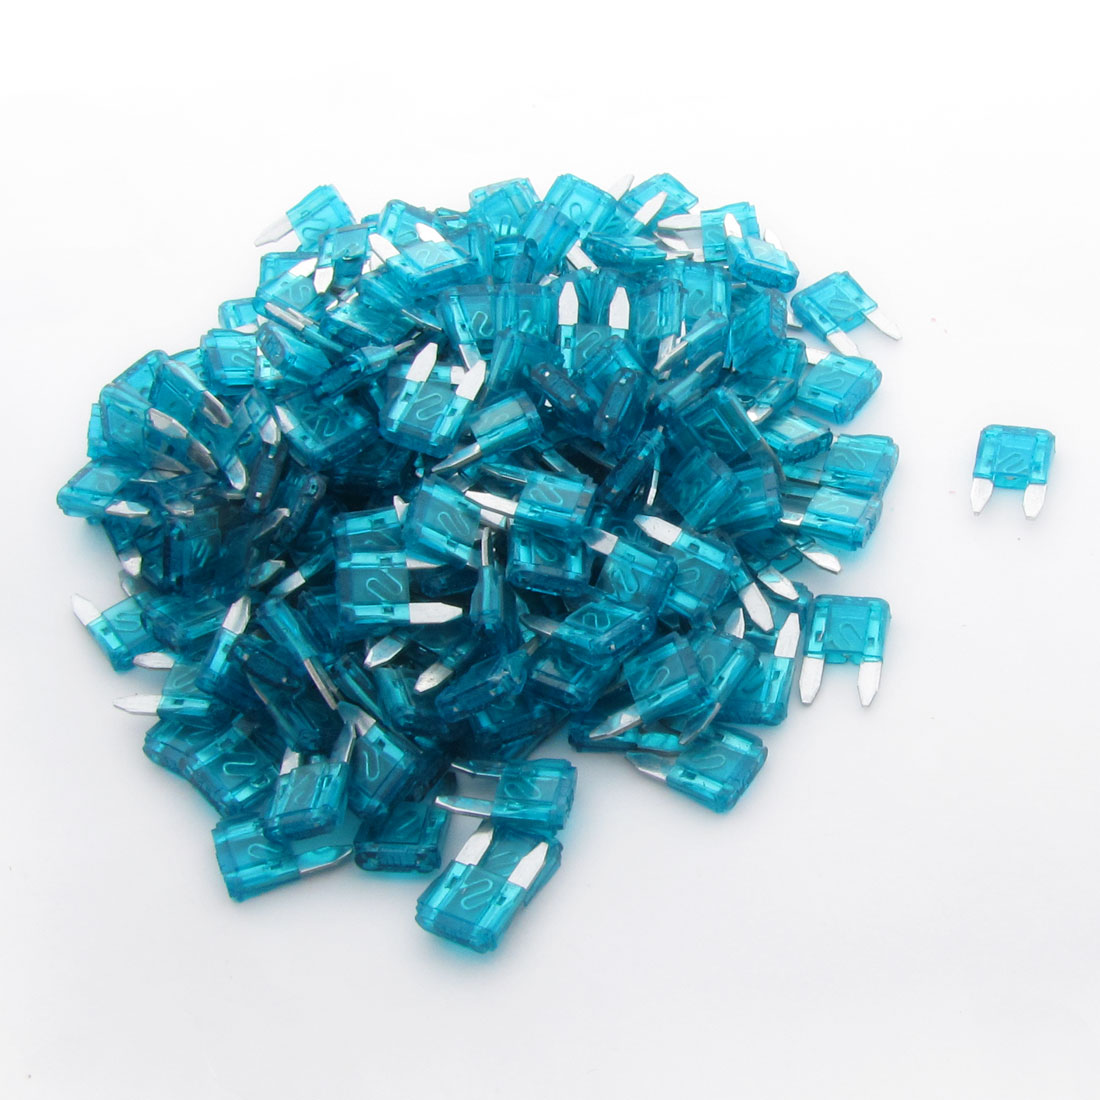 200pcs Blue 15A Fast Acting Car Blade Fuses Small Size